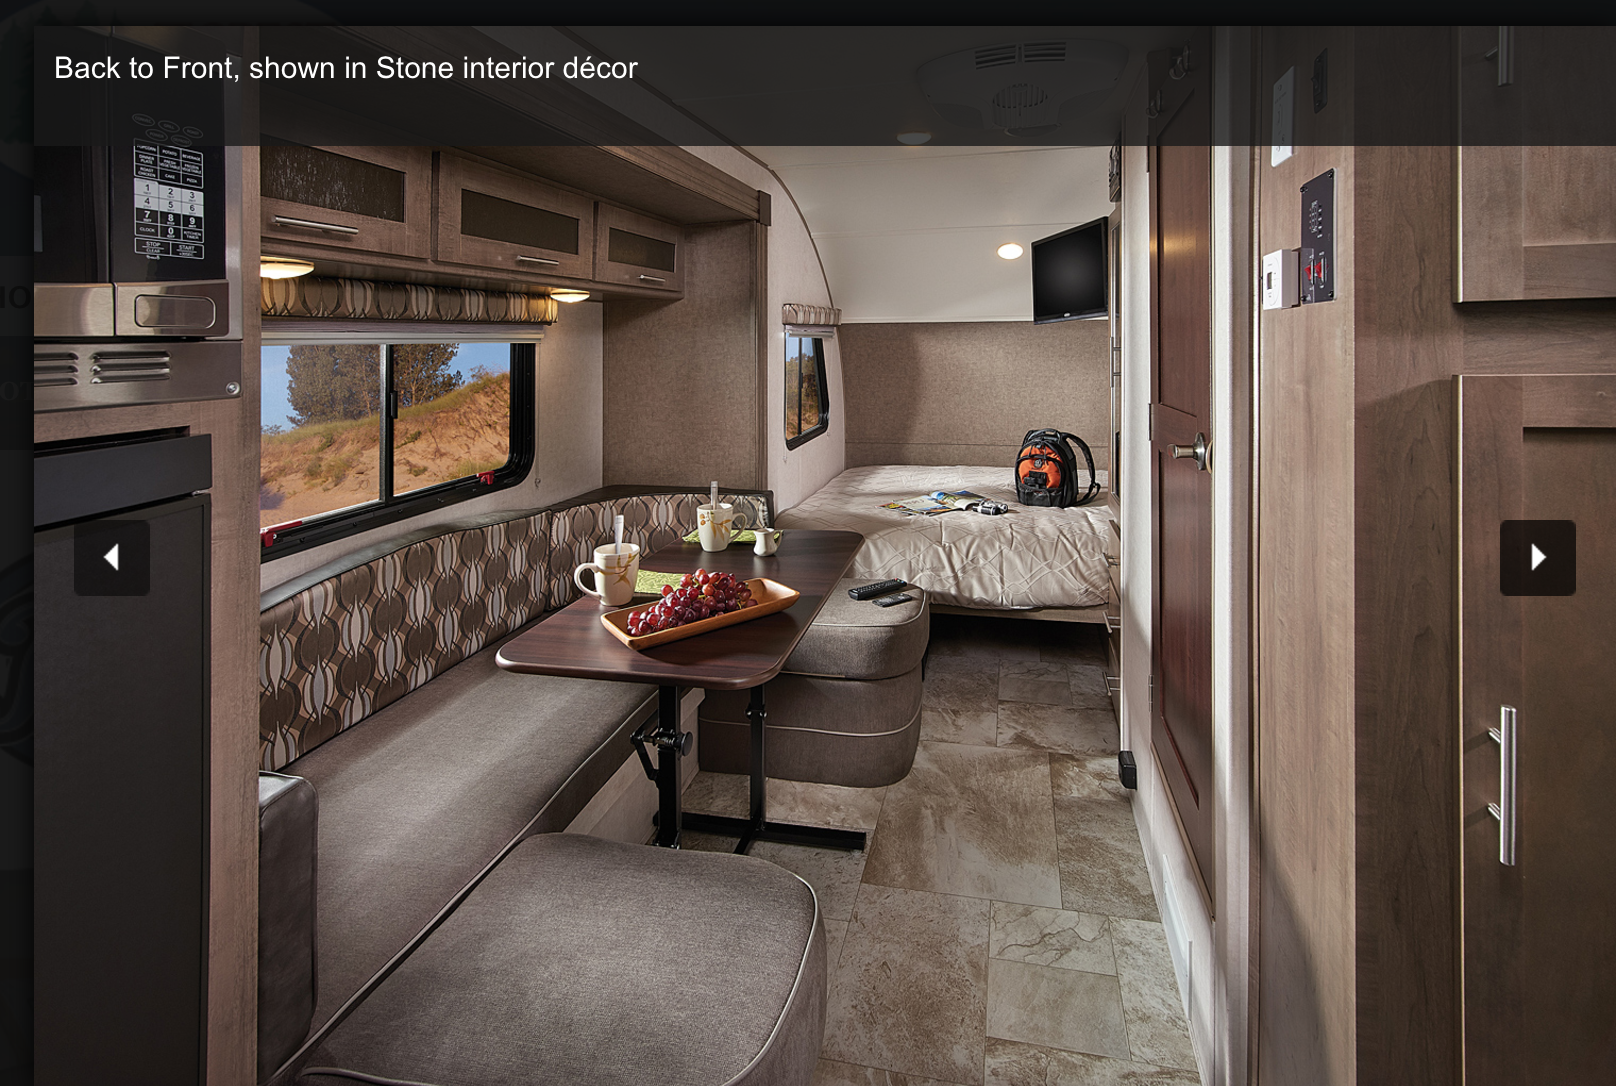 Dinette that turns into a bed for 2, plus queen size mattress towards the front. -Stock brochure picture for perspective